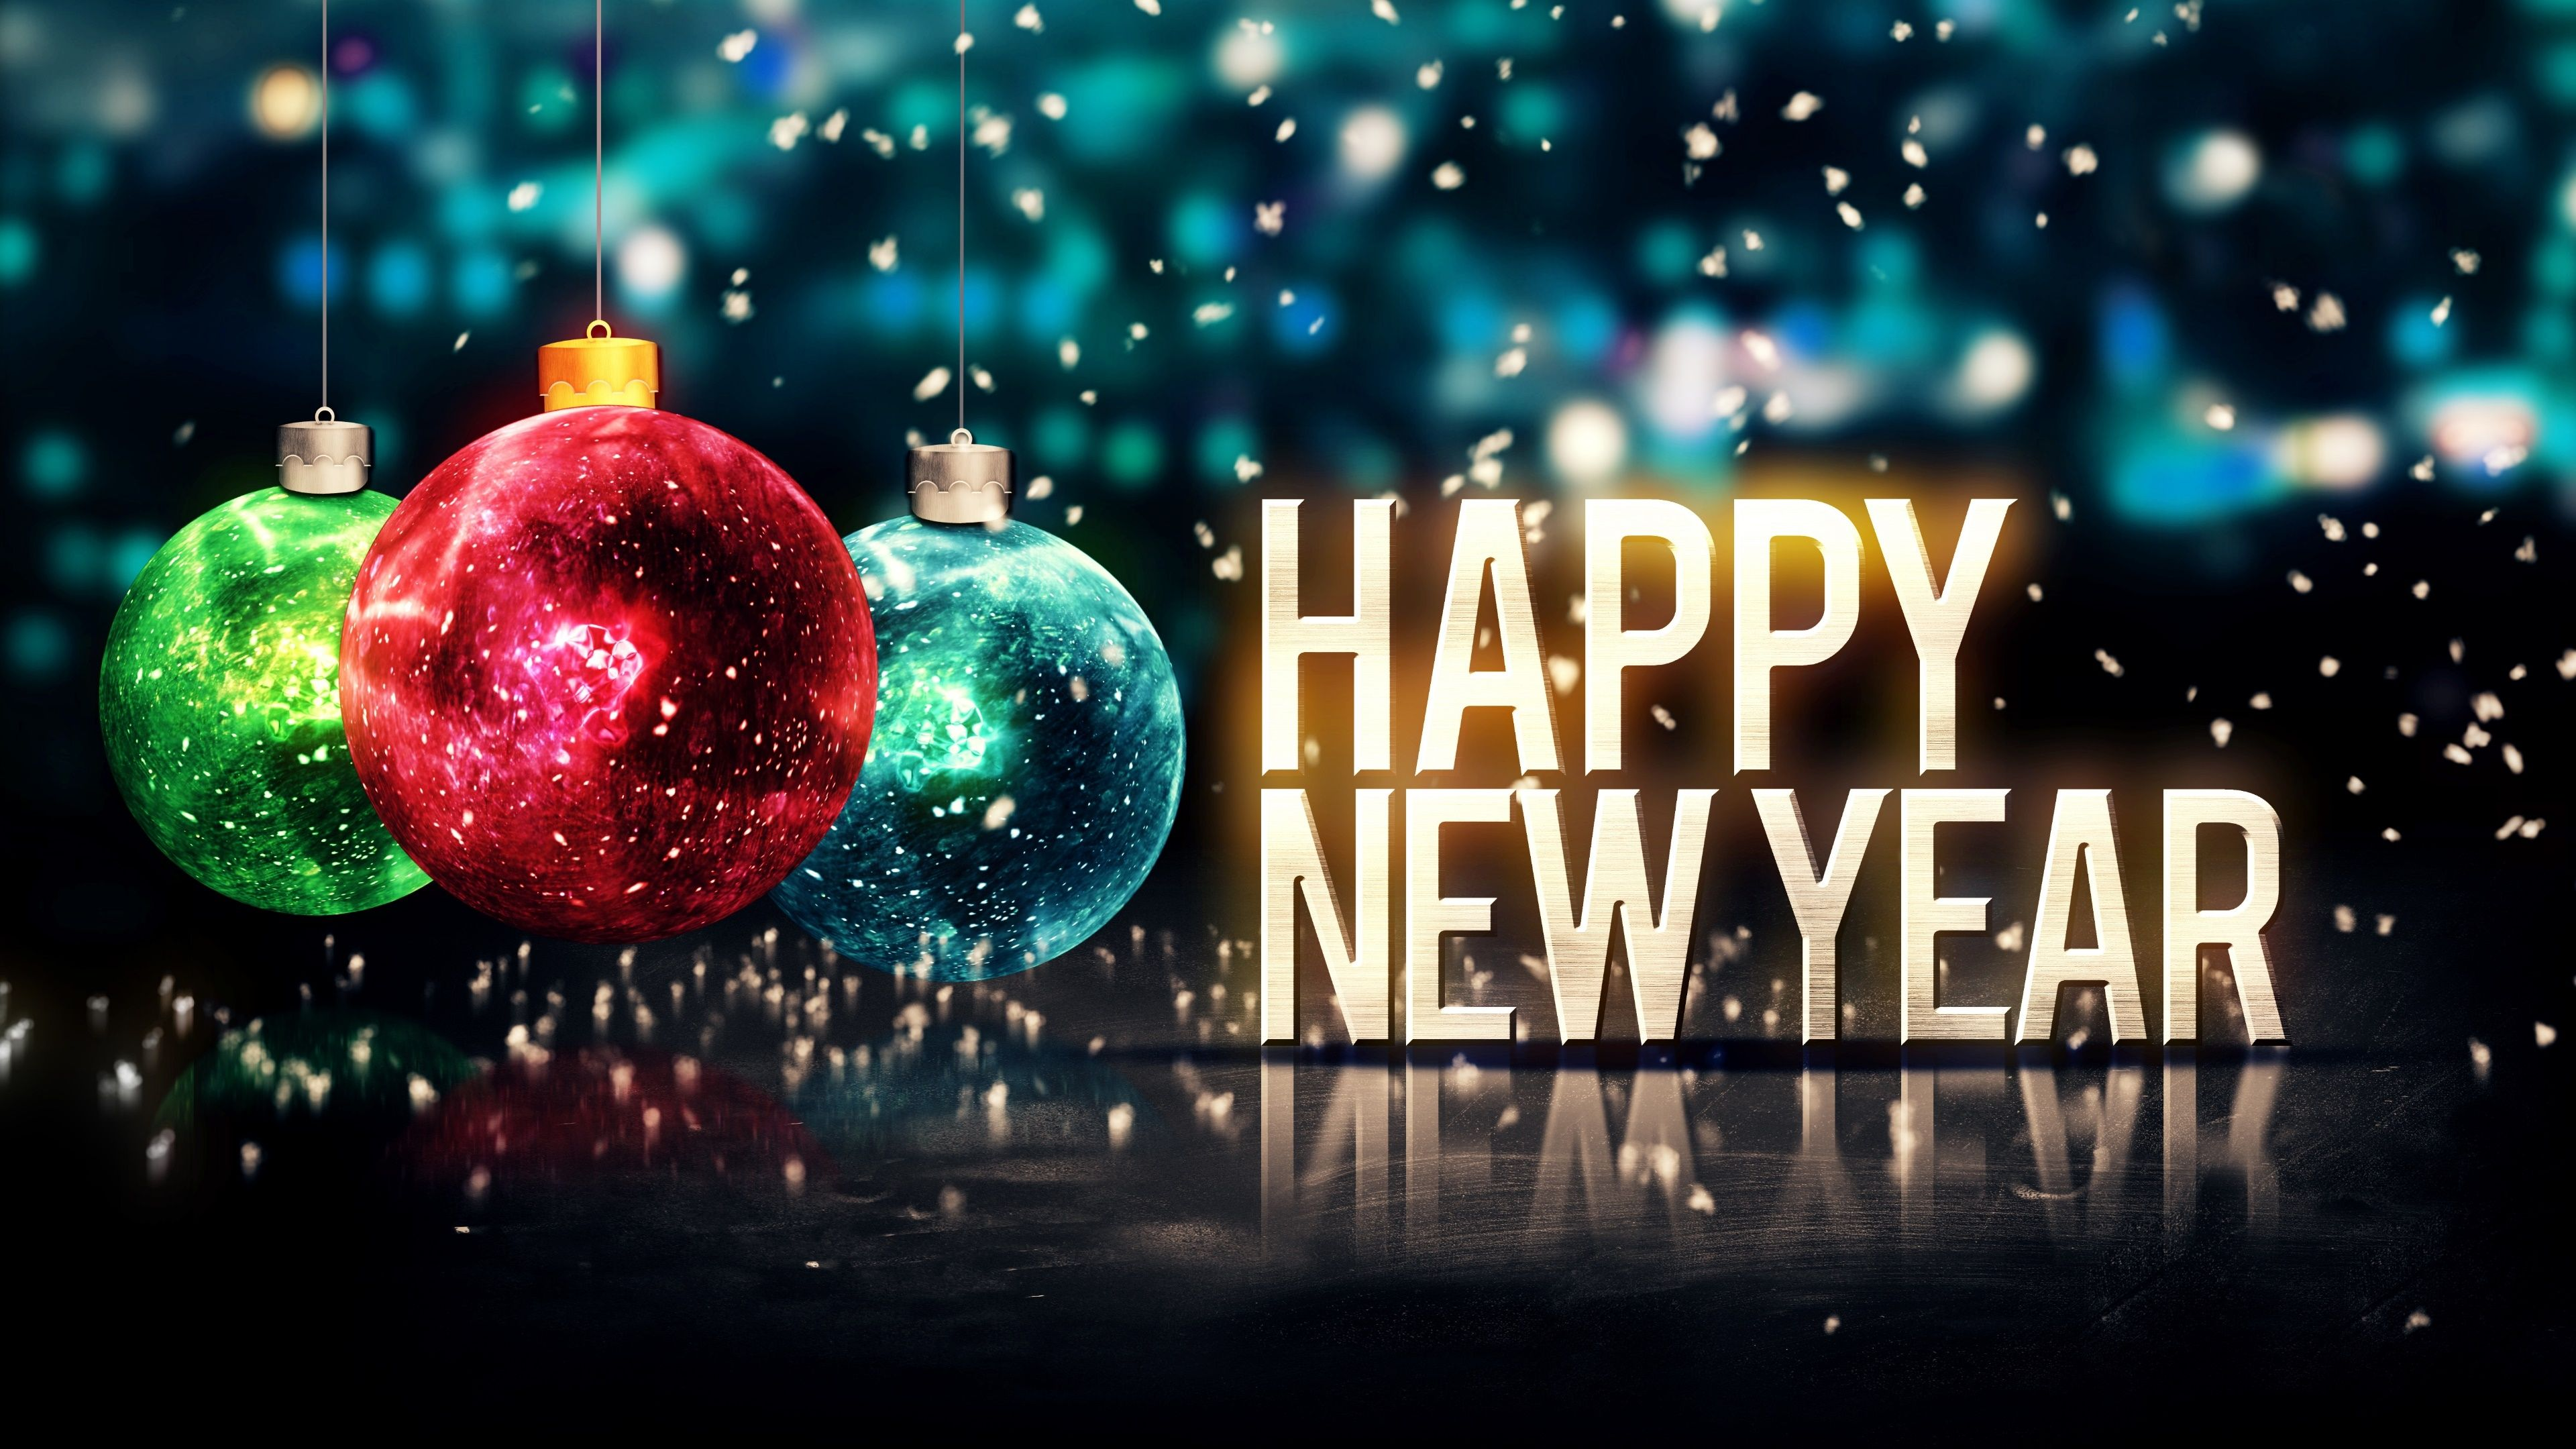 3840x2160 - Happy New Year Backgrounds 7